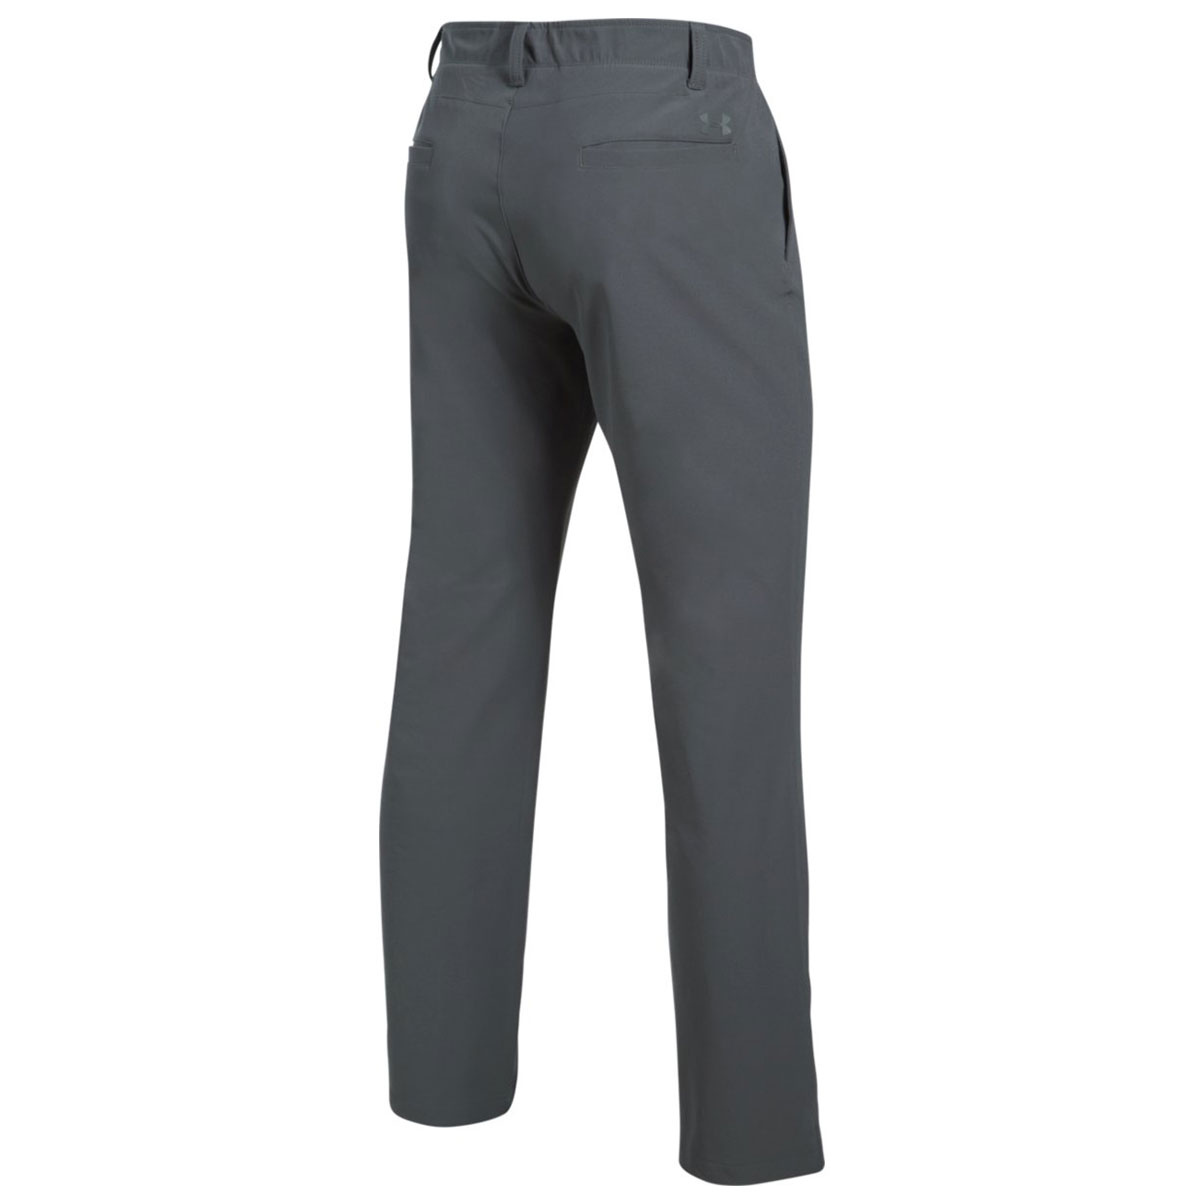 Under-Armour-Mens-Match-Play-ColdGear-Infrared-Taper-Golf-Trousers-52-OFF-RRP thumbnail 21